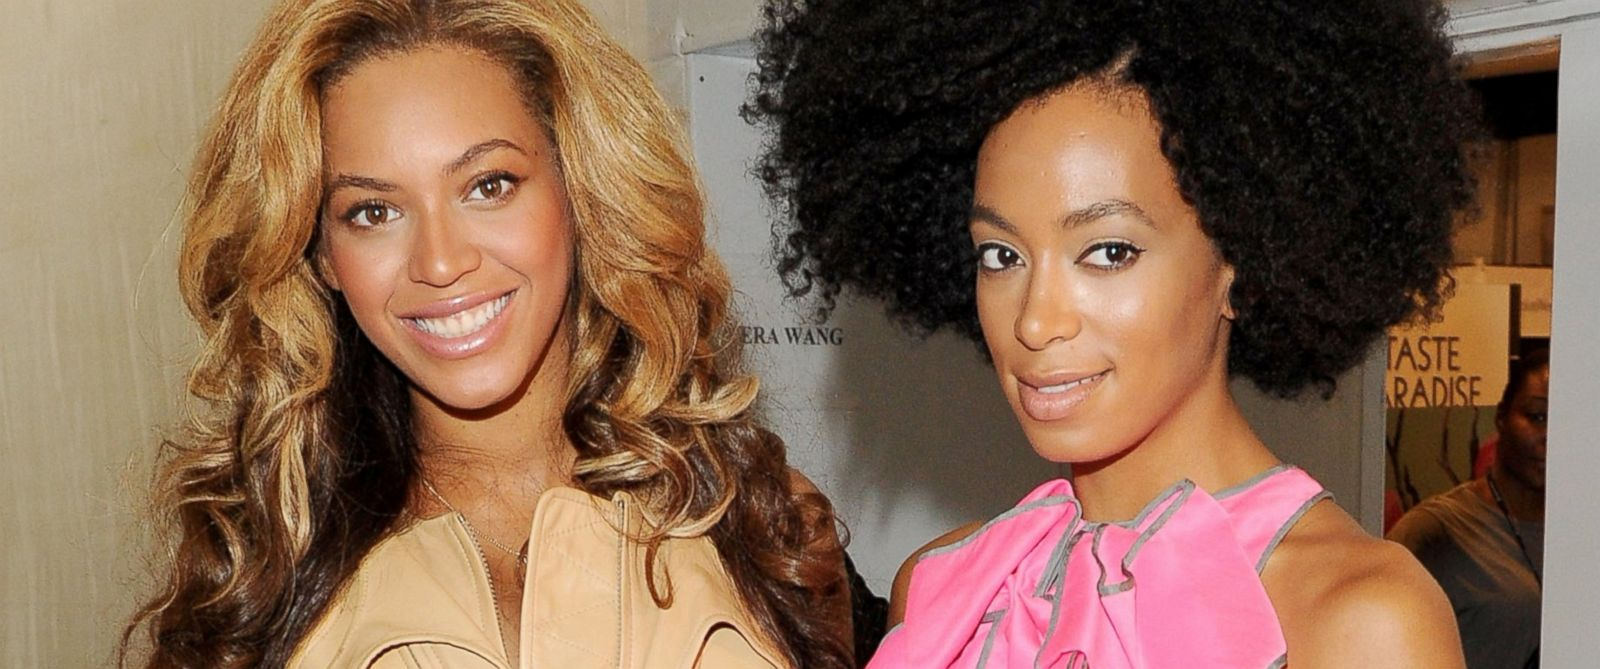 Singers Beyoncé and Solange Knowles pose backstage at the Vera Wang Spring 2012 fashion show, Sept. 13, 2011, in New York City.